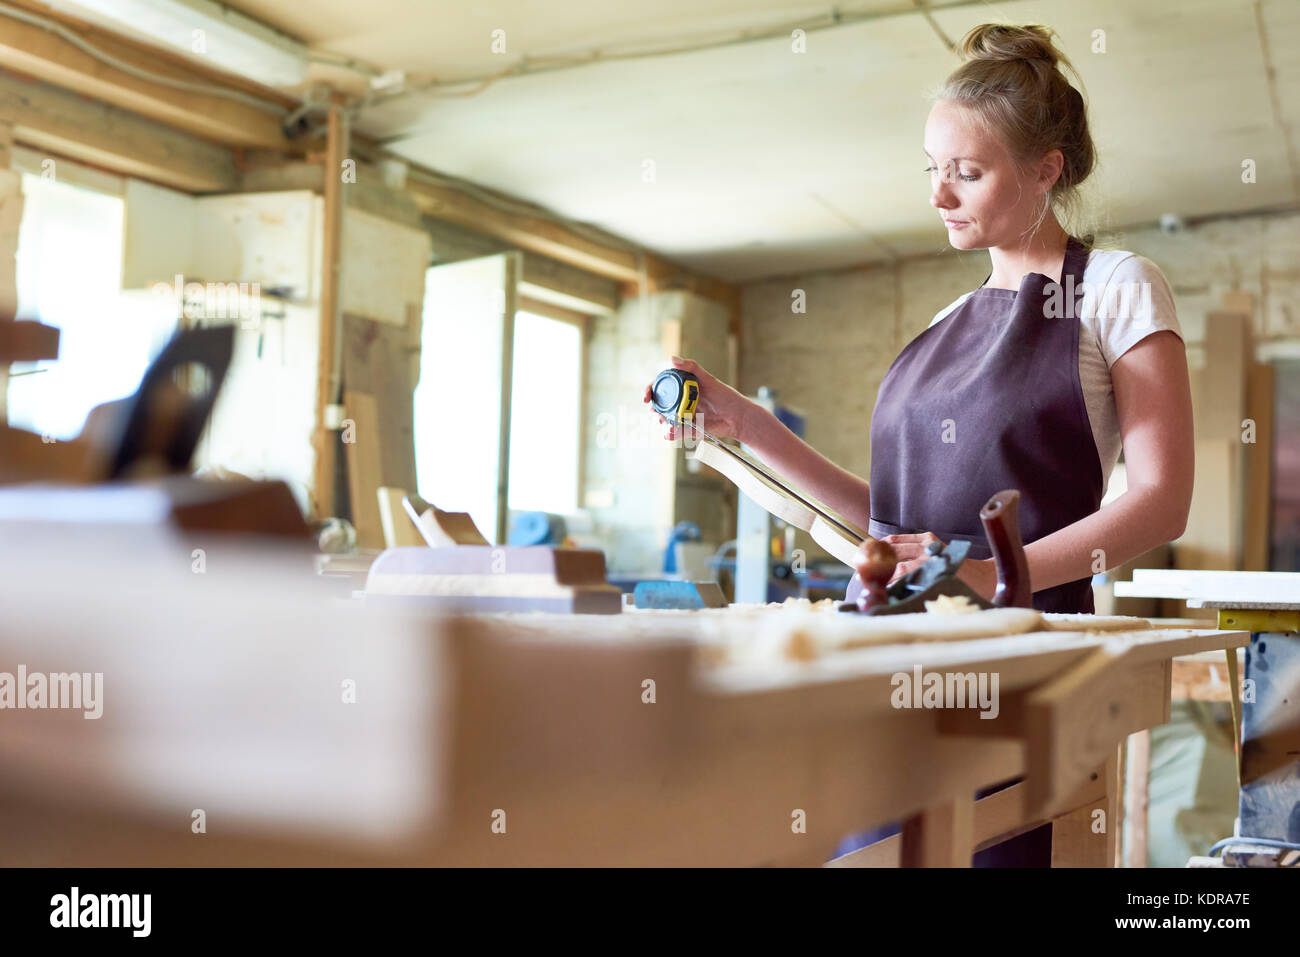 Female Carpenter Working in Shop - Stock Image